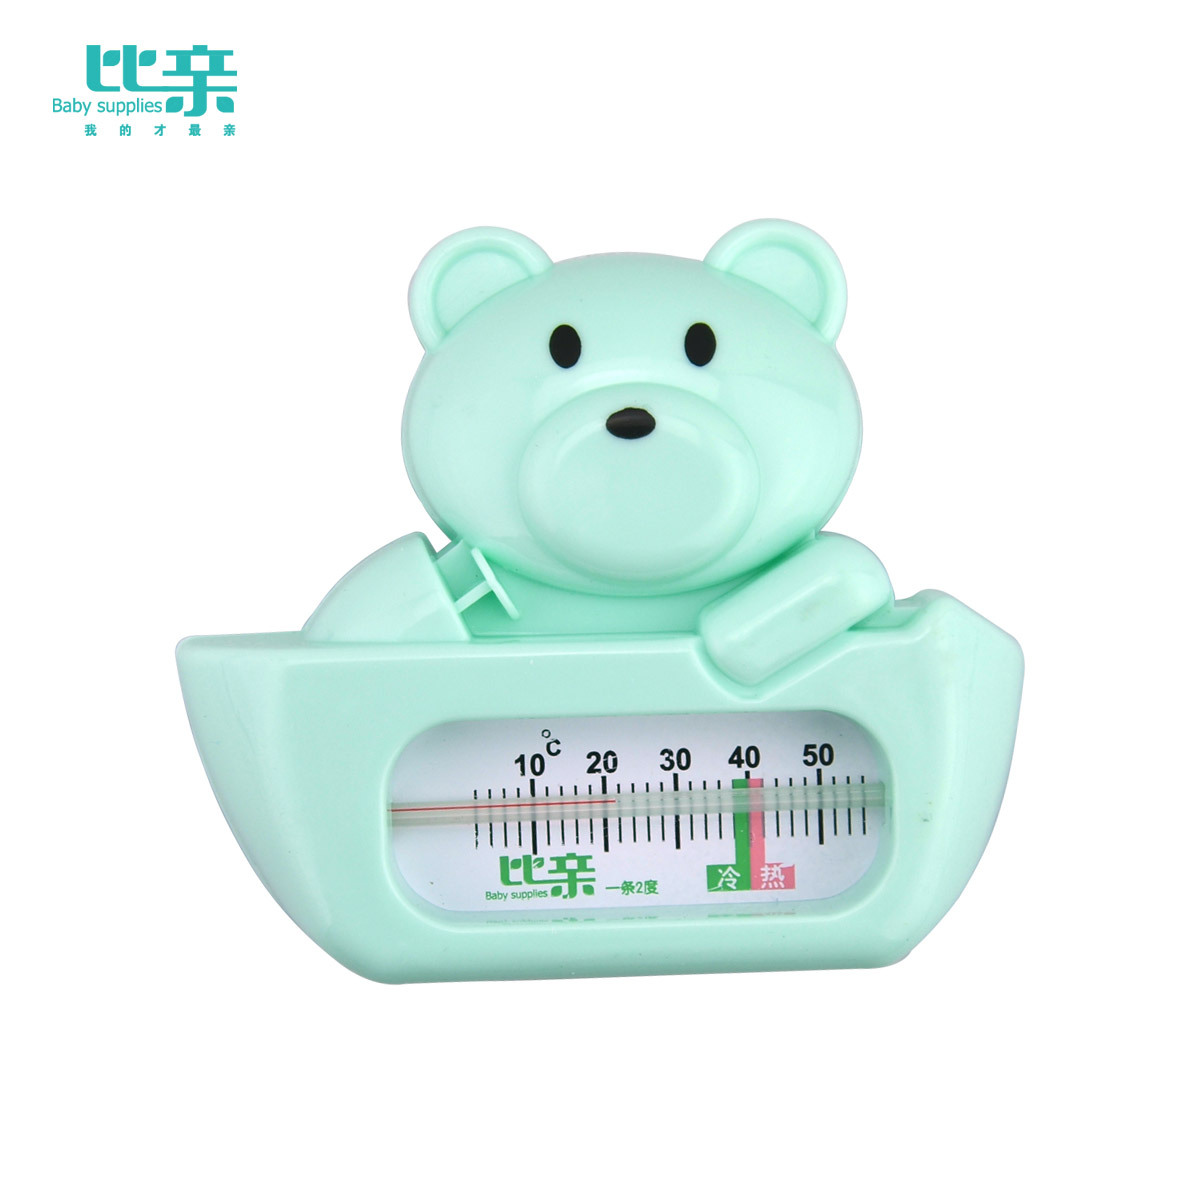 Hot Plastic Floating Lovely Bear Baby Water Thermometer Float High quality Safe Baby Bath Toy(China (Mainland))